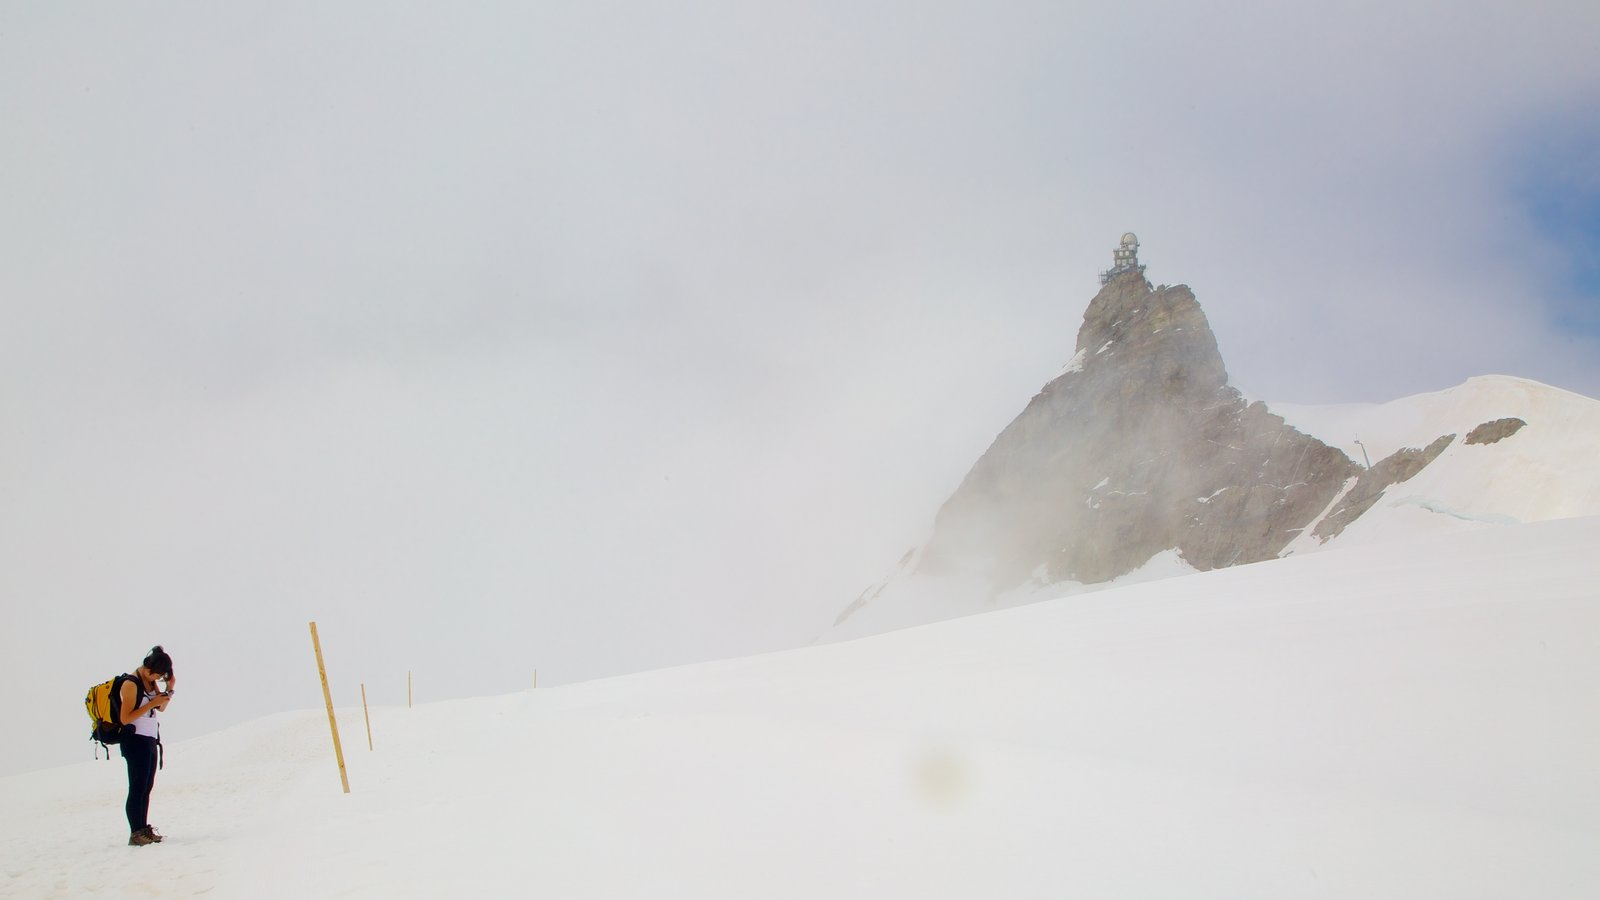 Jungfraujoch featuring mist or fog, hiking or walking and mountains